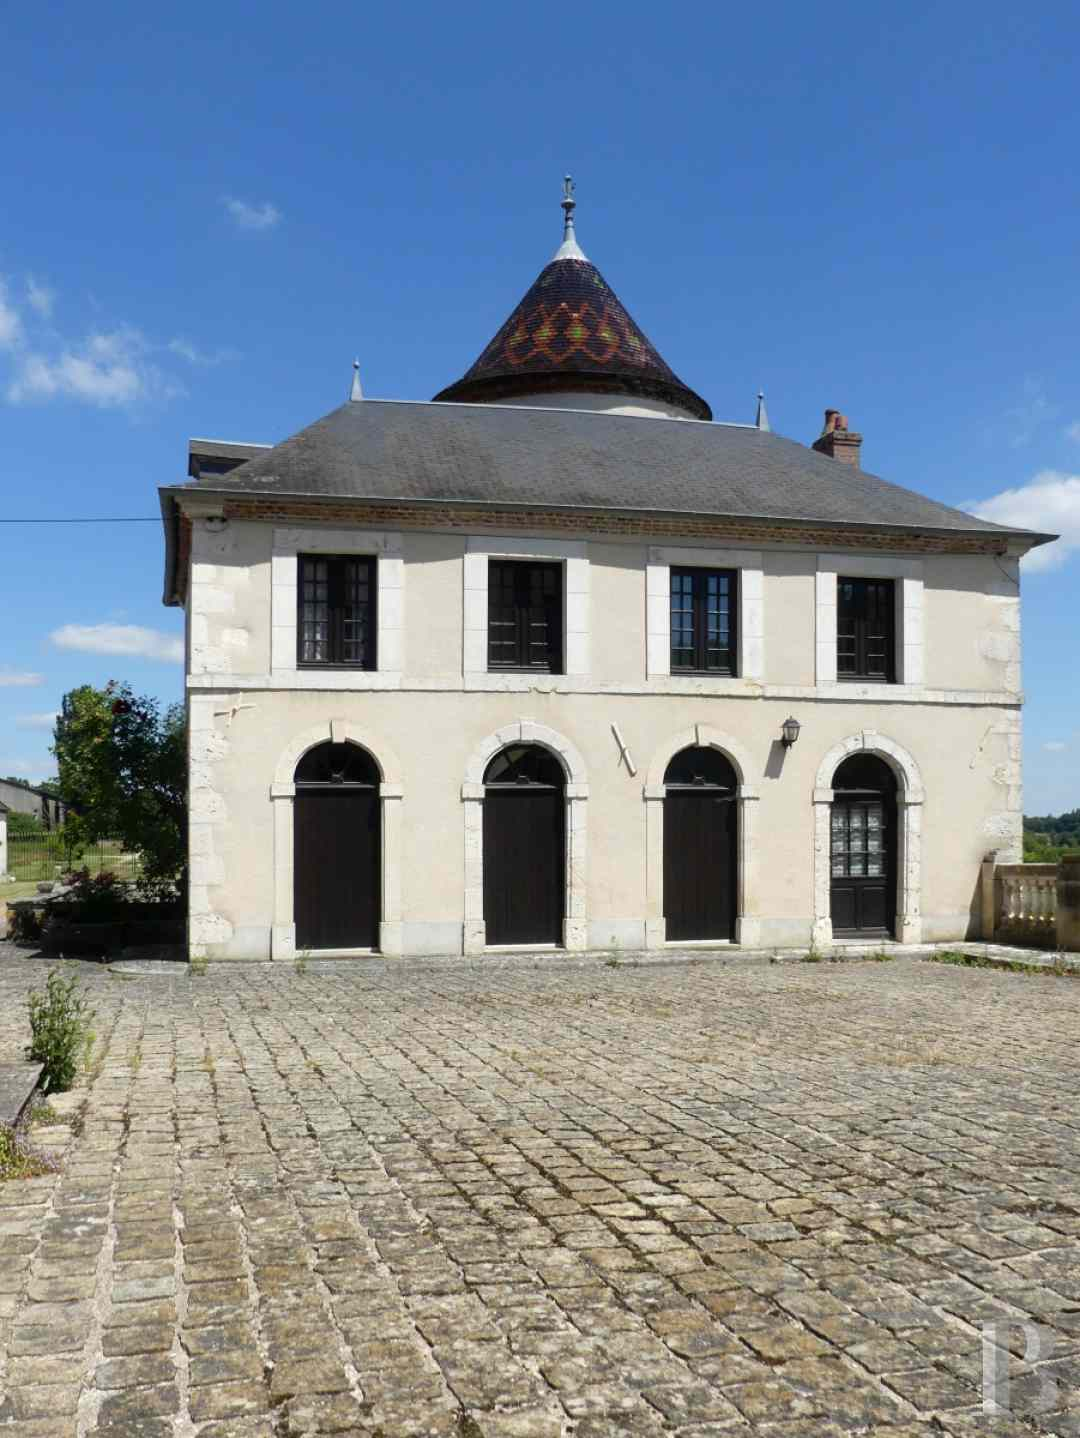 chateaux a vendre bourgogne chateau domaine - 13 zoom